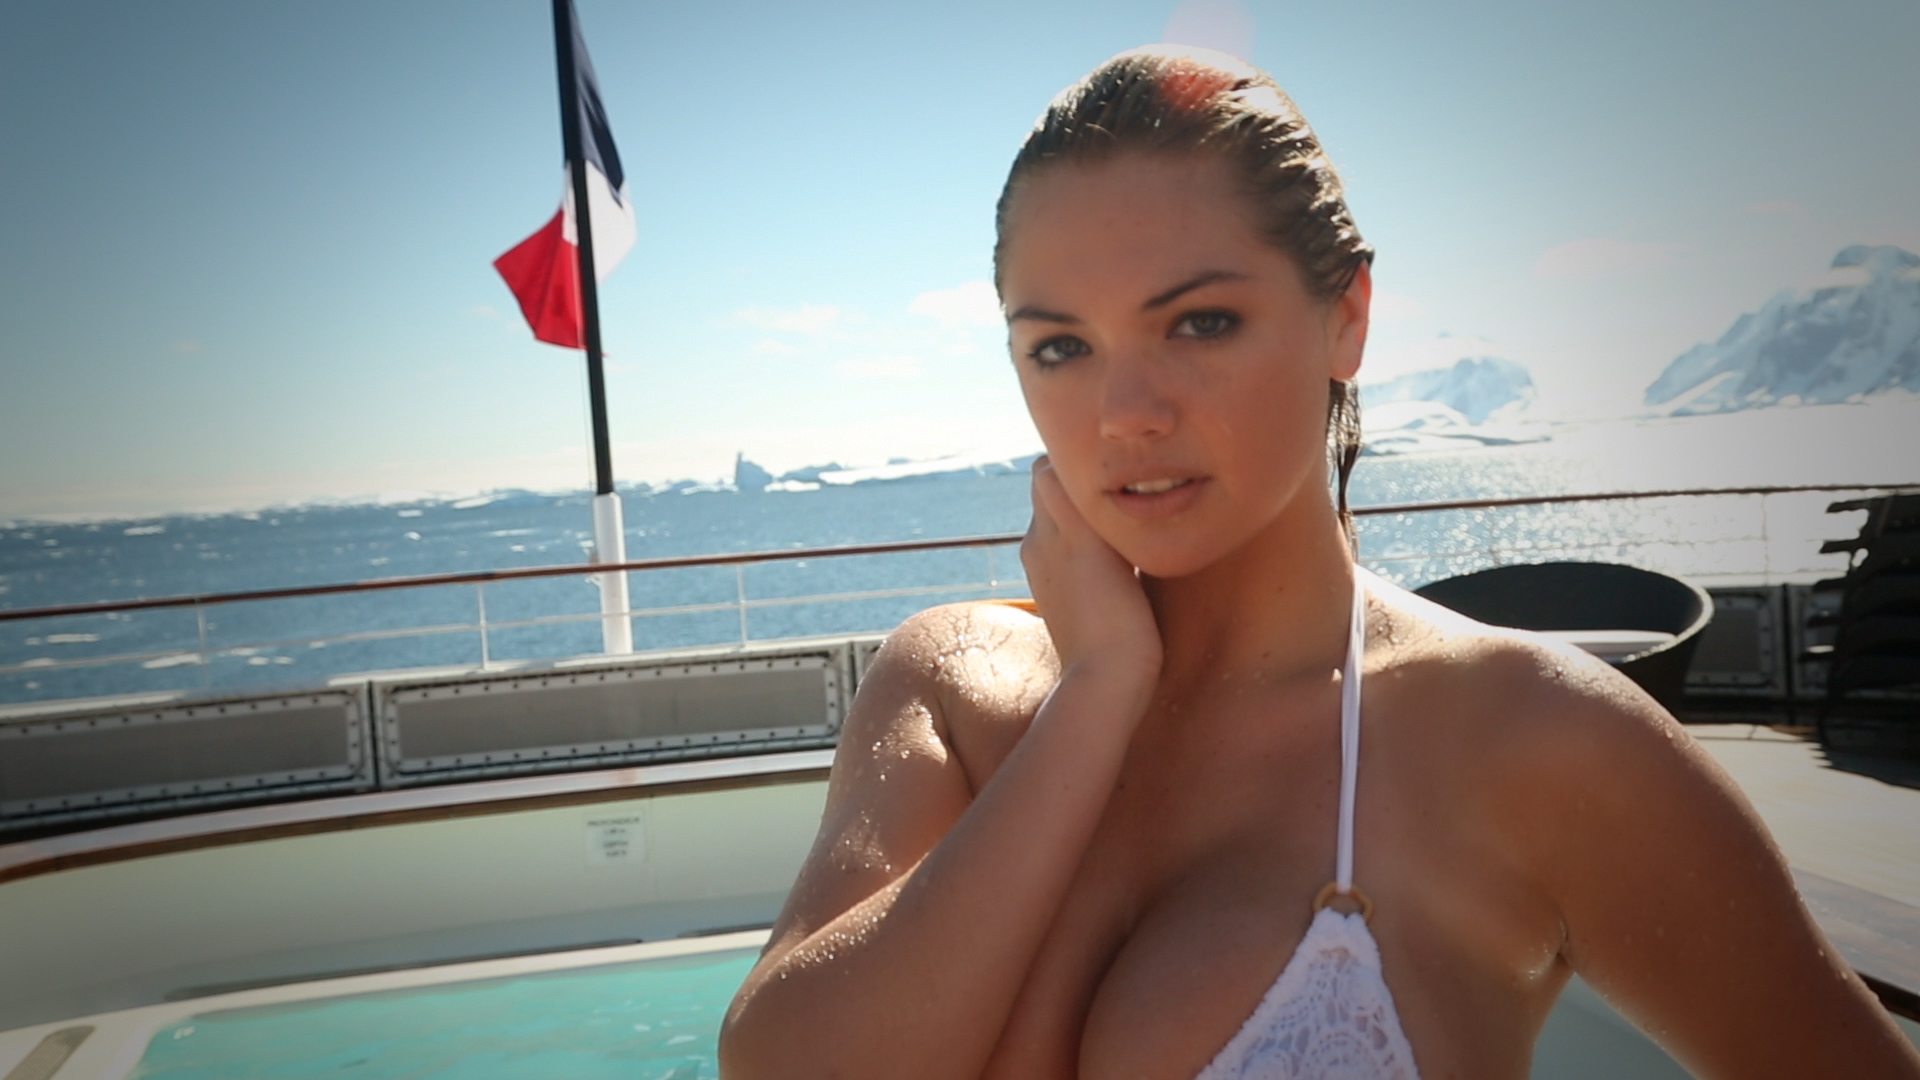 Kate Upton returns to Antarctica (sort of), and we can't help but reminisce about her first visit